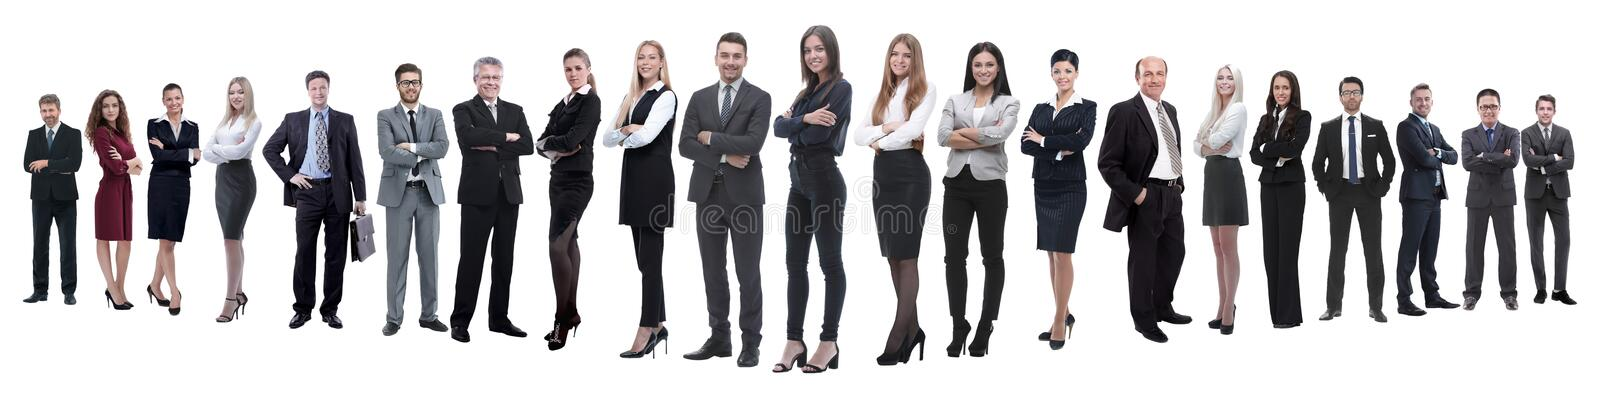 Panoramic photo of a professional numerous business team. Isolated on white background royalty free stock photo